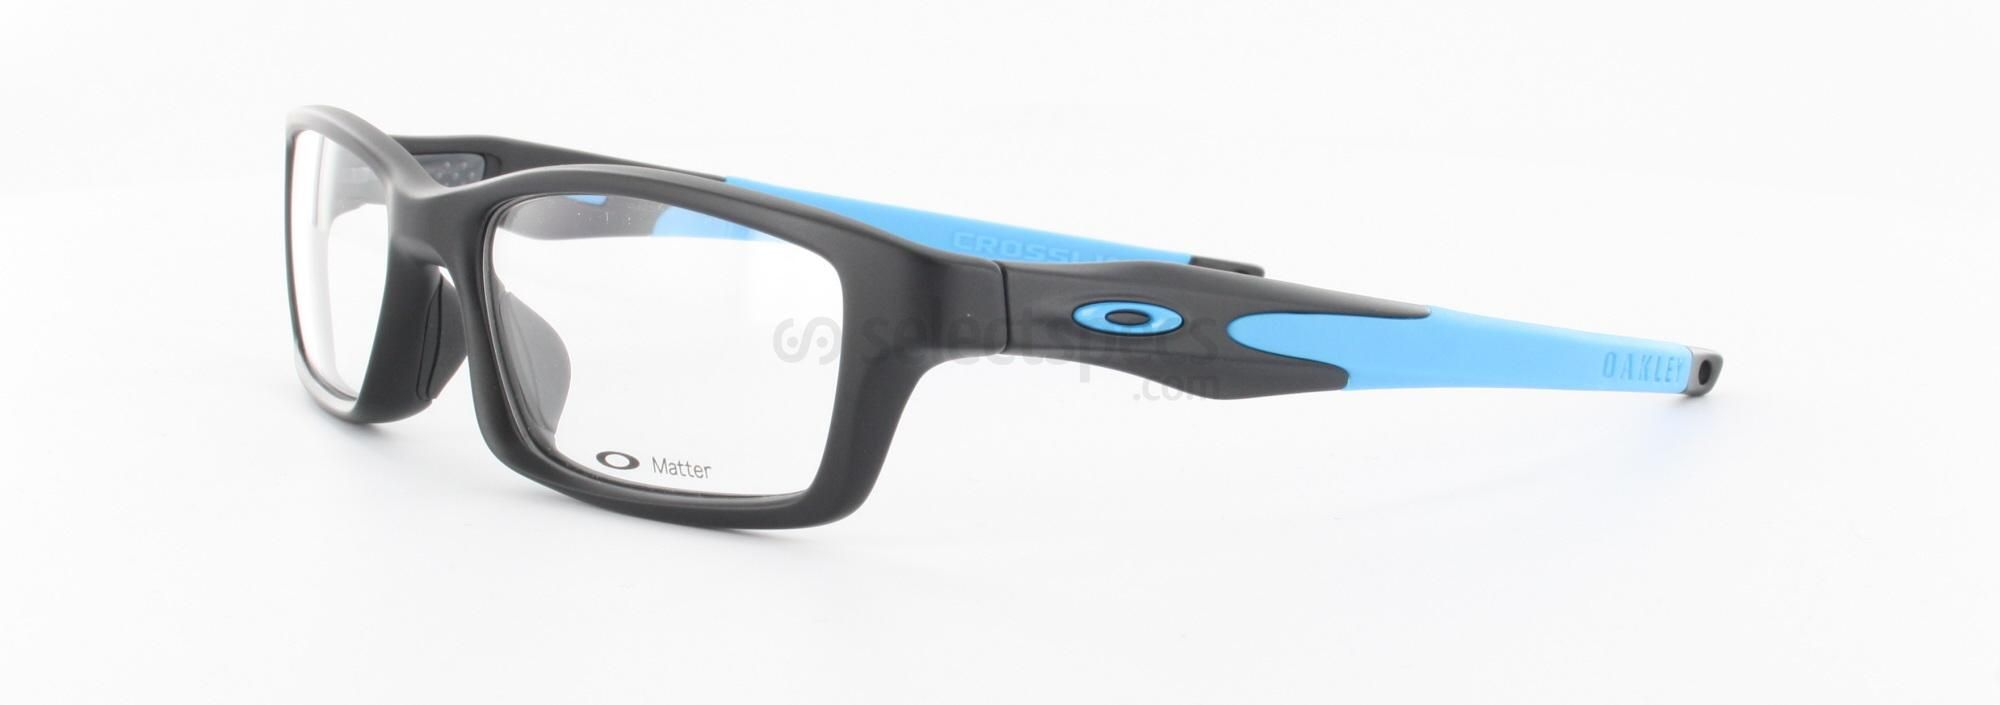 8d471c83e9 Oakley Crosslink in Satin Black and Sky Blue is our most popular choice